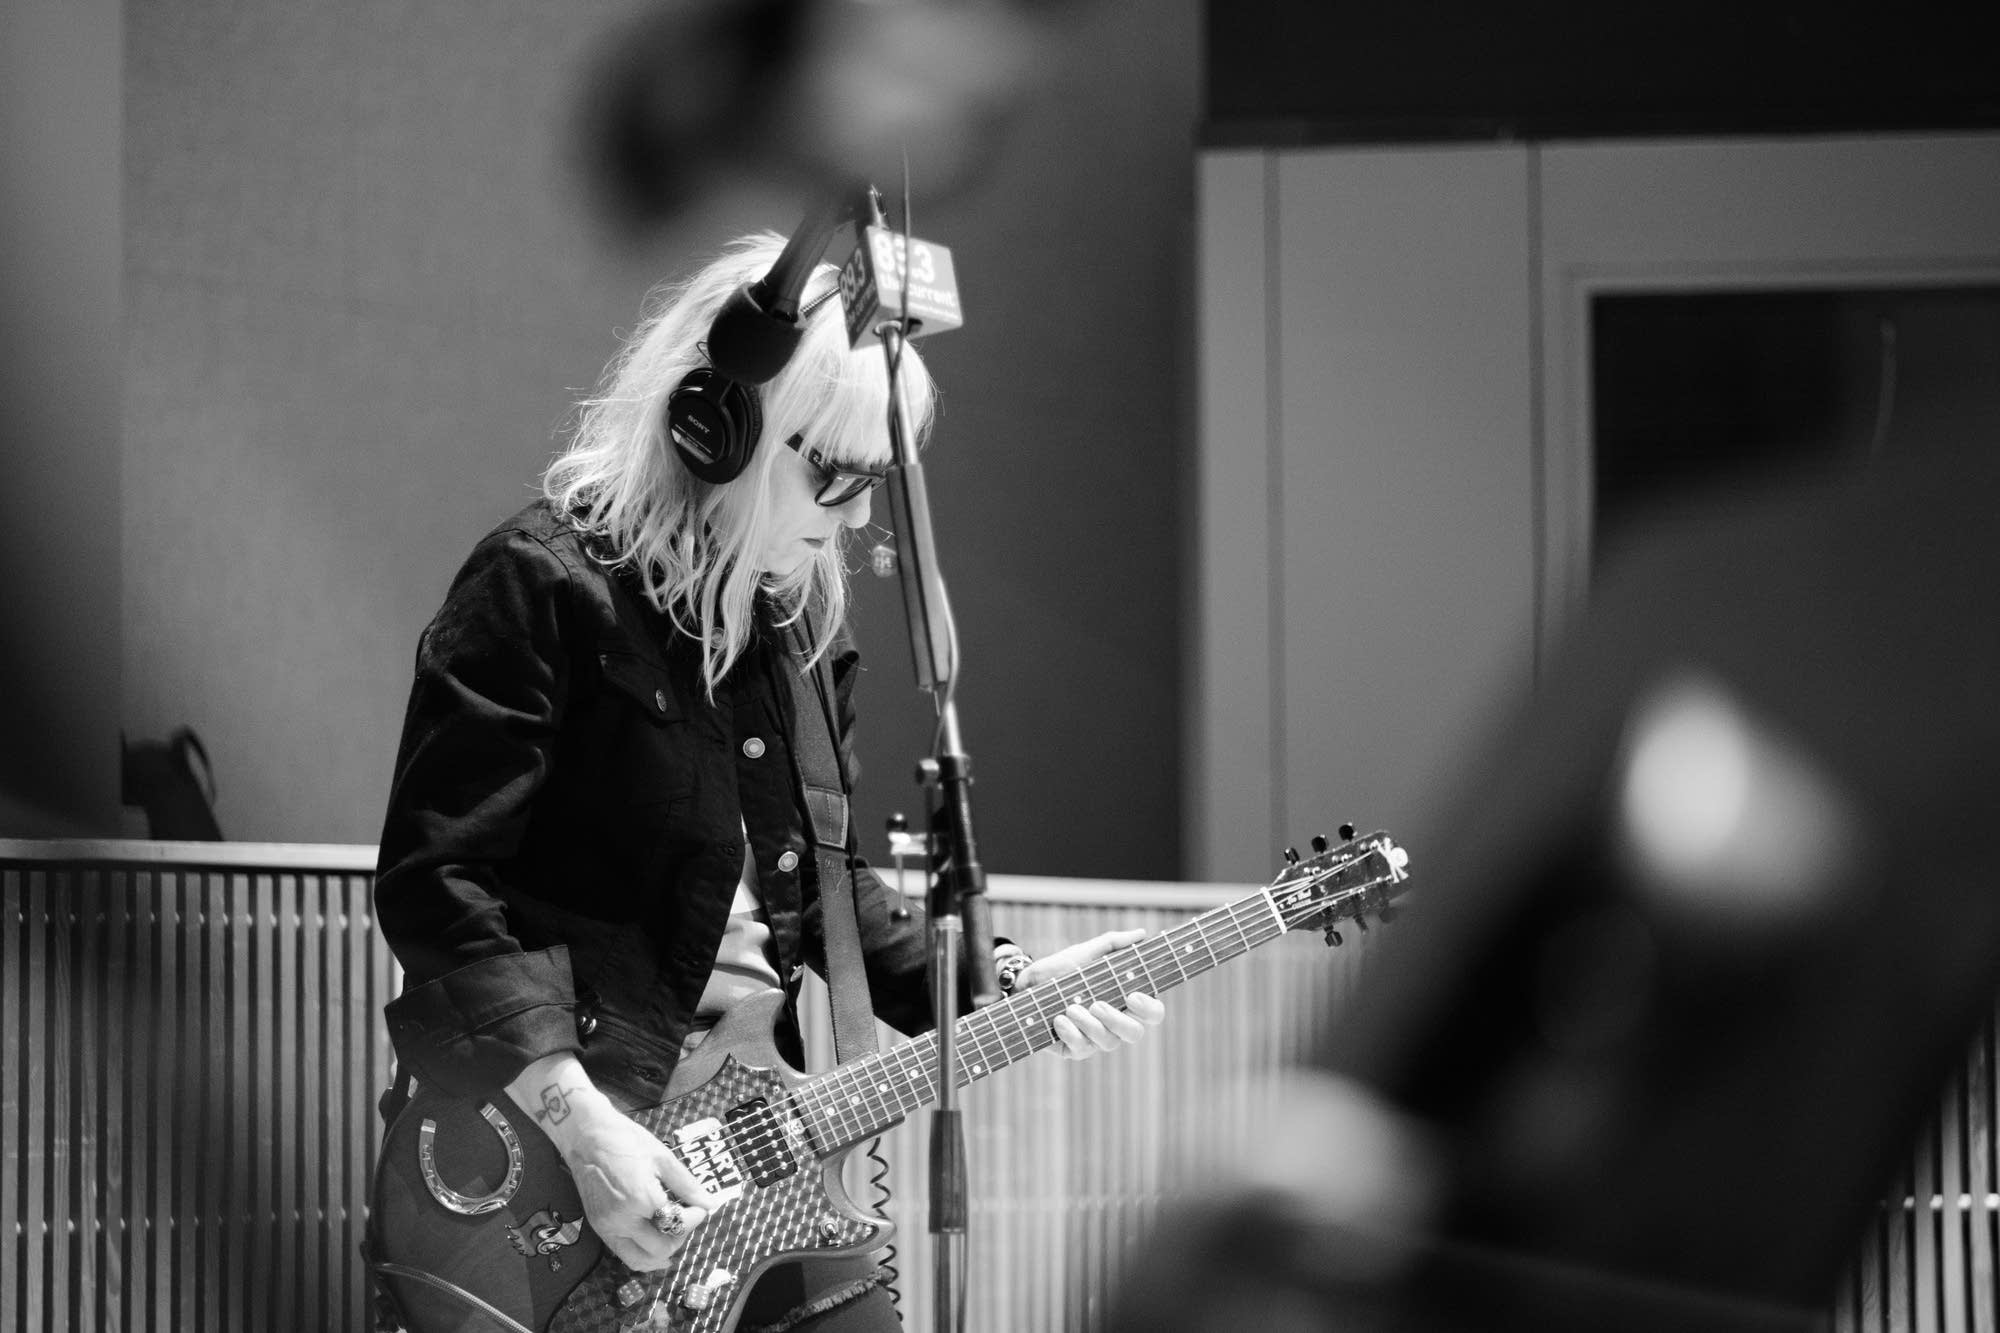 L7 perform in The Current studio